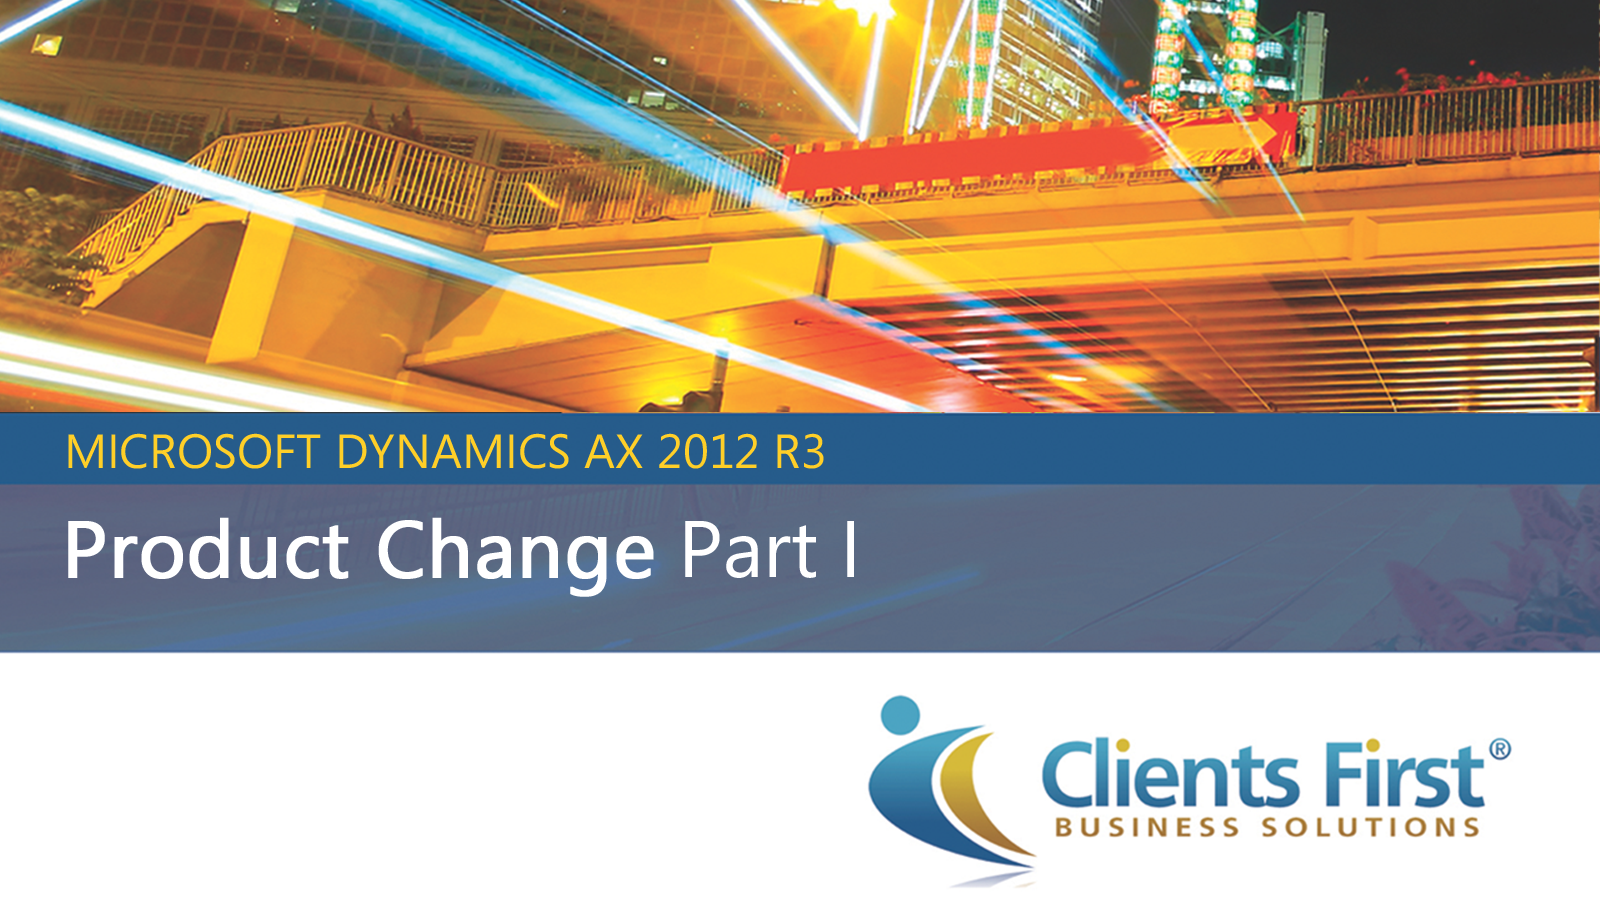 AX 2012 R3 Product Change Demo